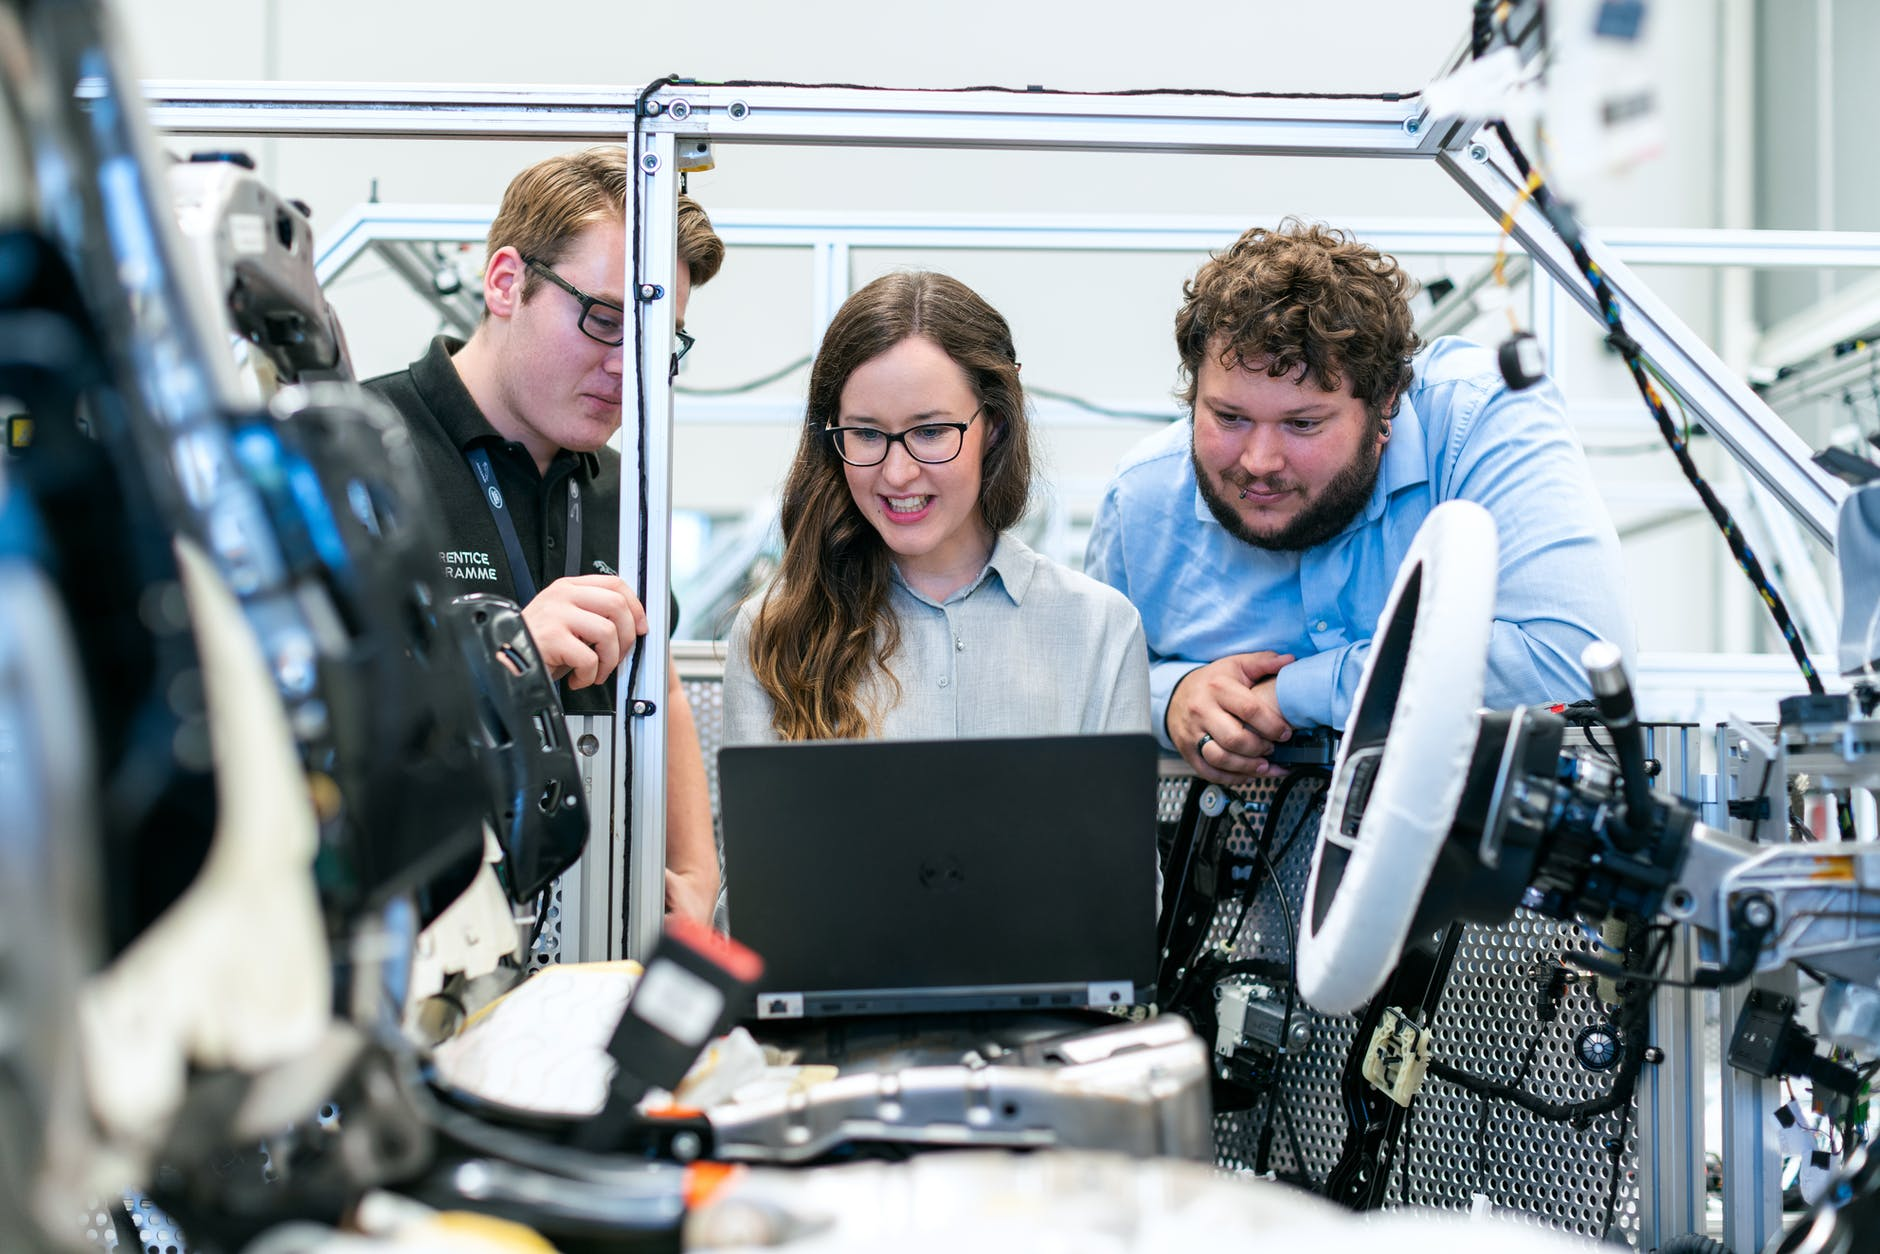 three engineers in a factory are looking at a laptop in an automobile frame